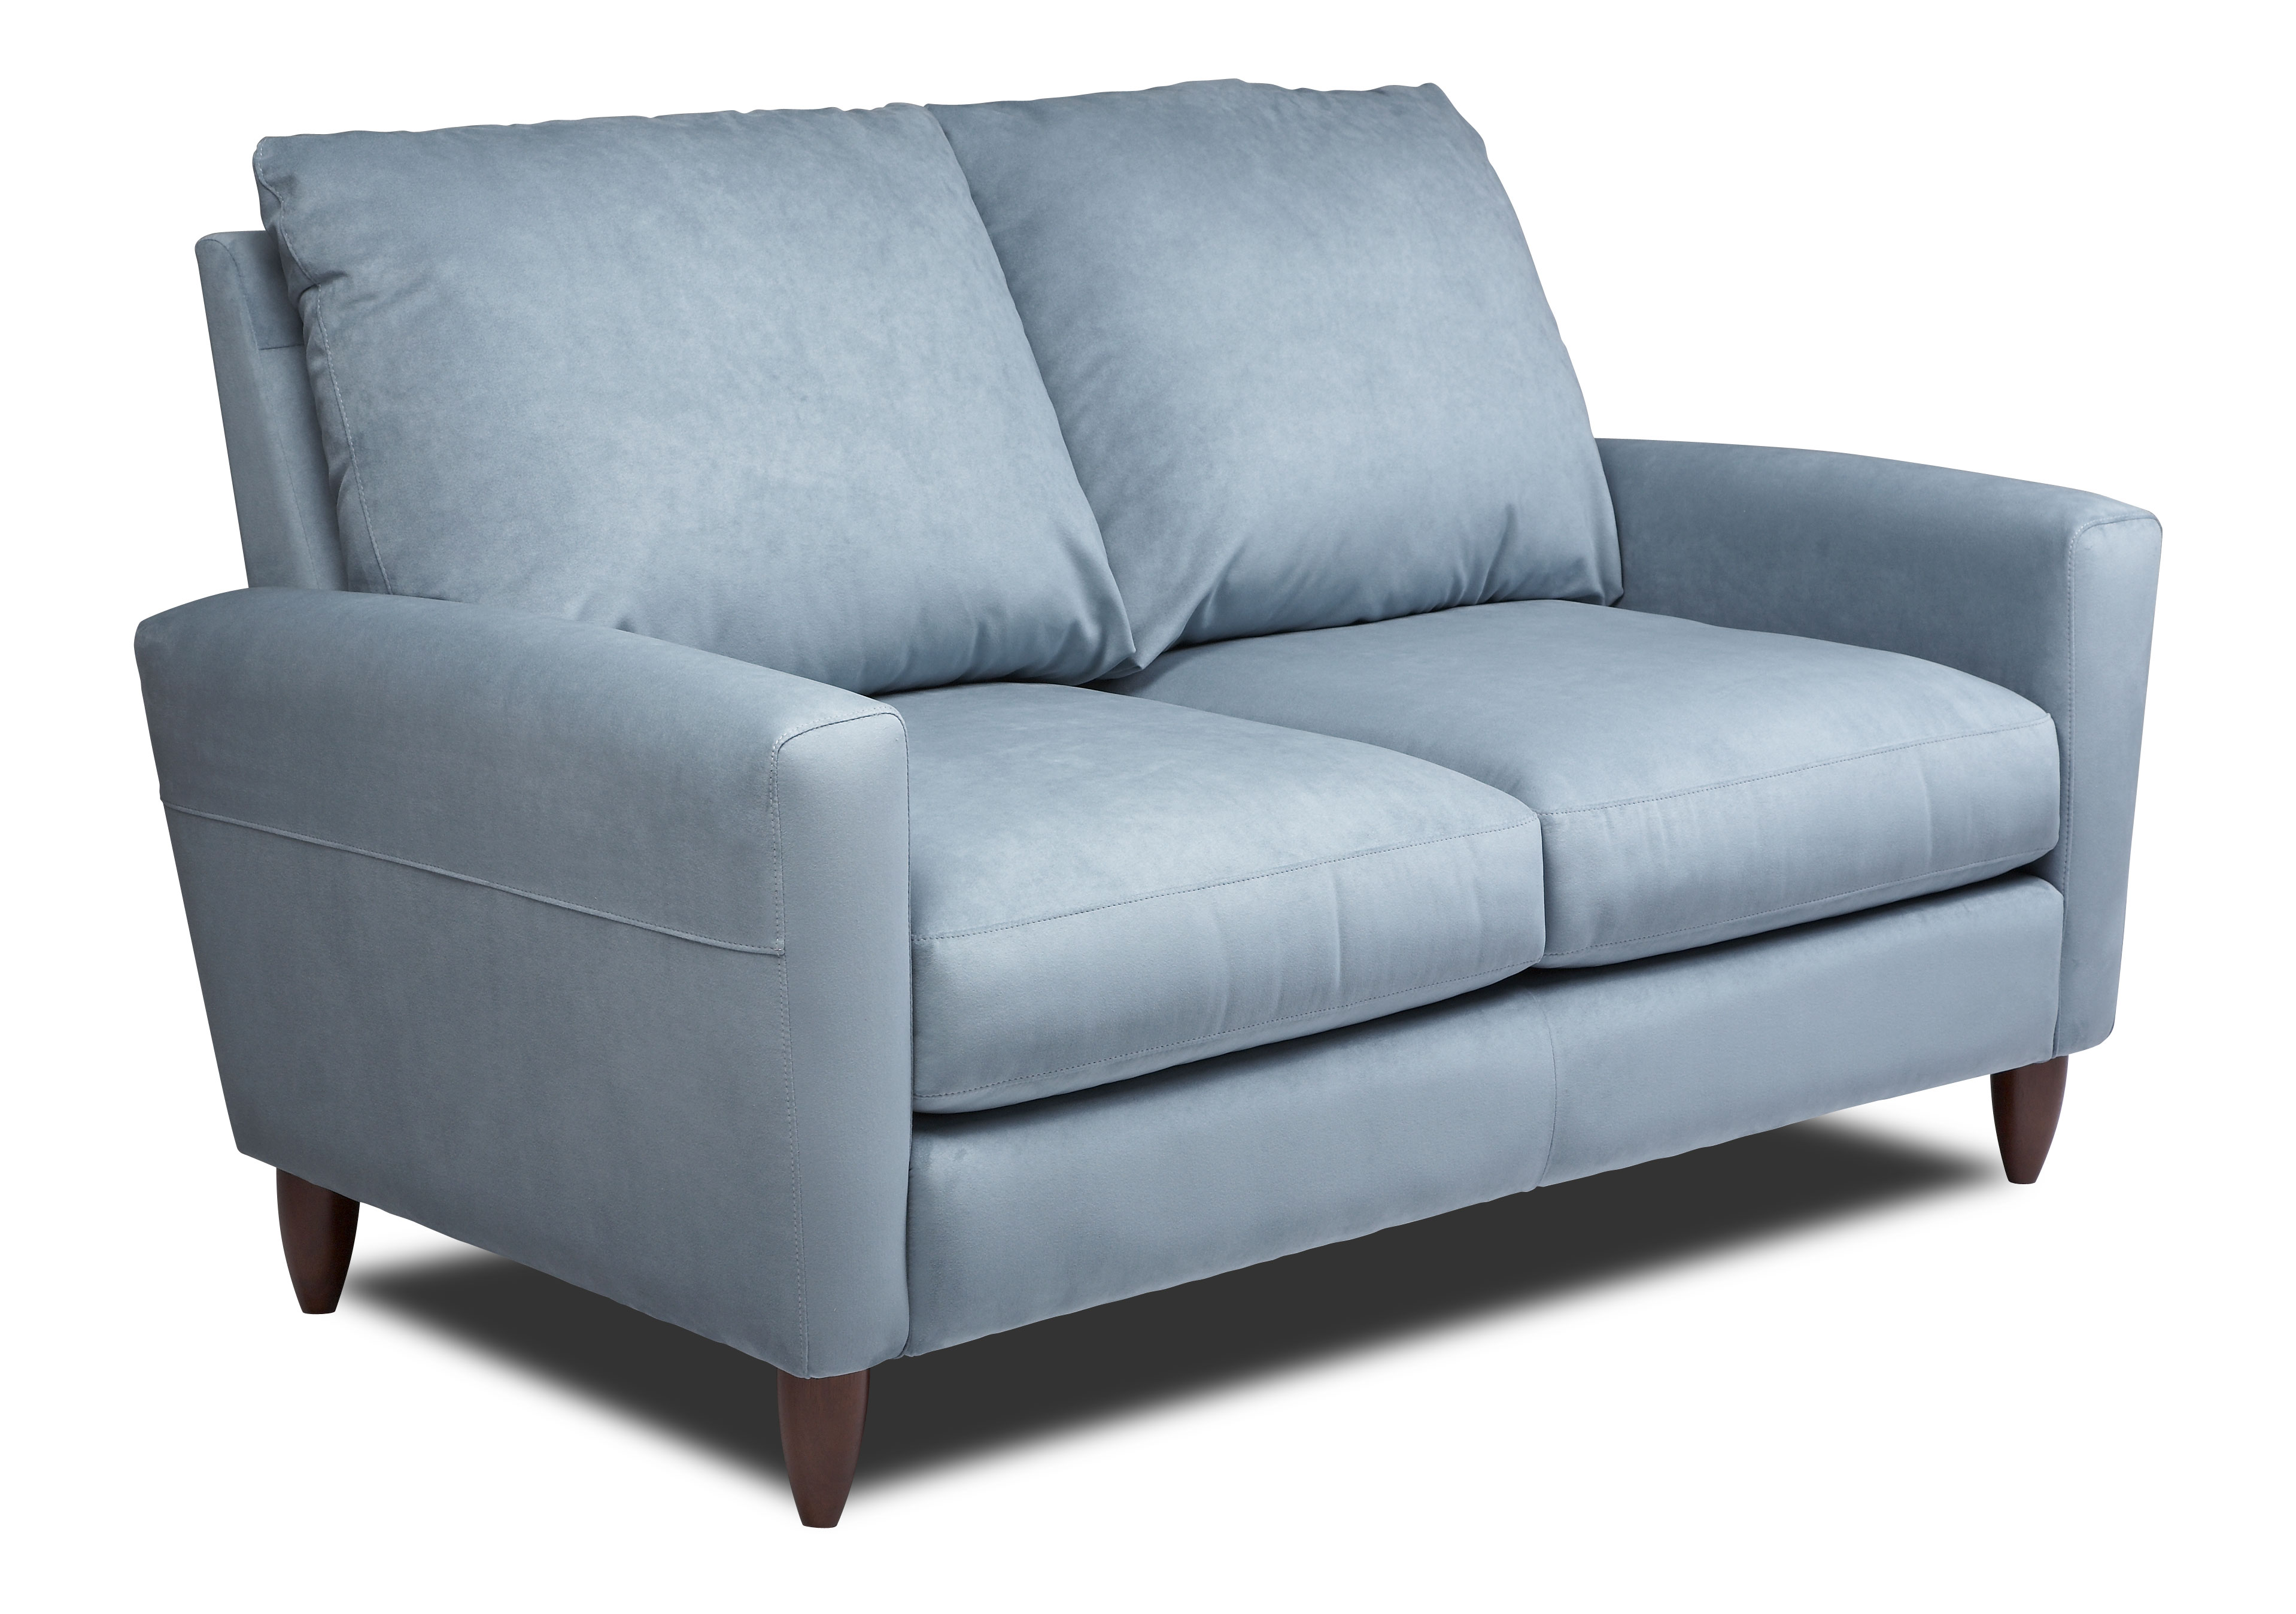 Sofa Love Seats Sofas Couches Loveseats American Freight